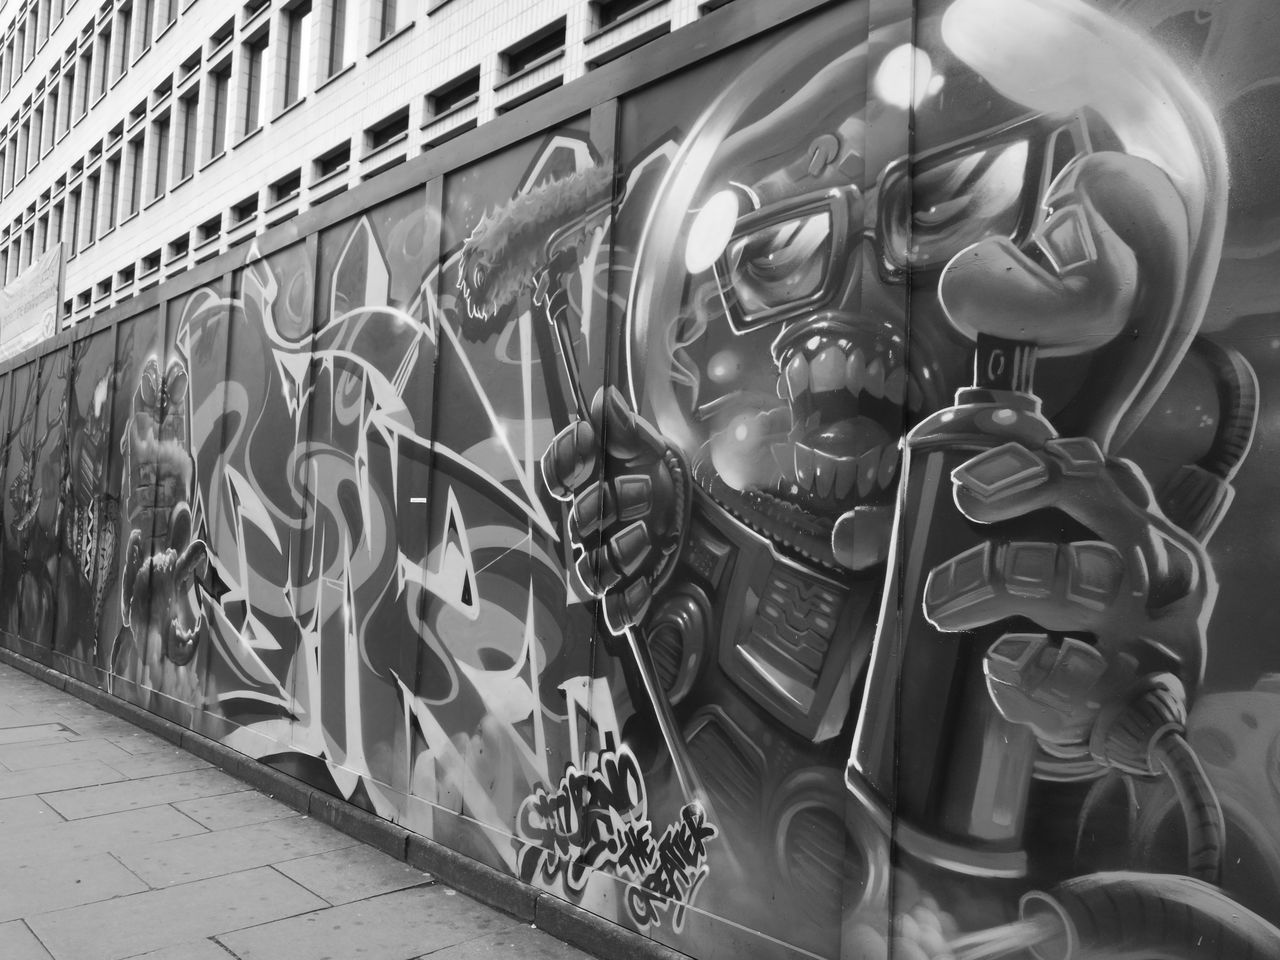 Hoxton London Graffiti Art HuaweiP9 First Eyeem Photo